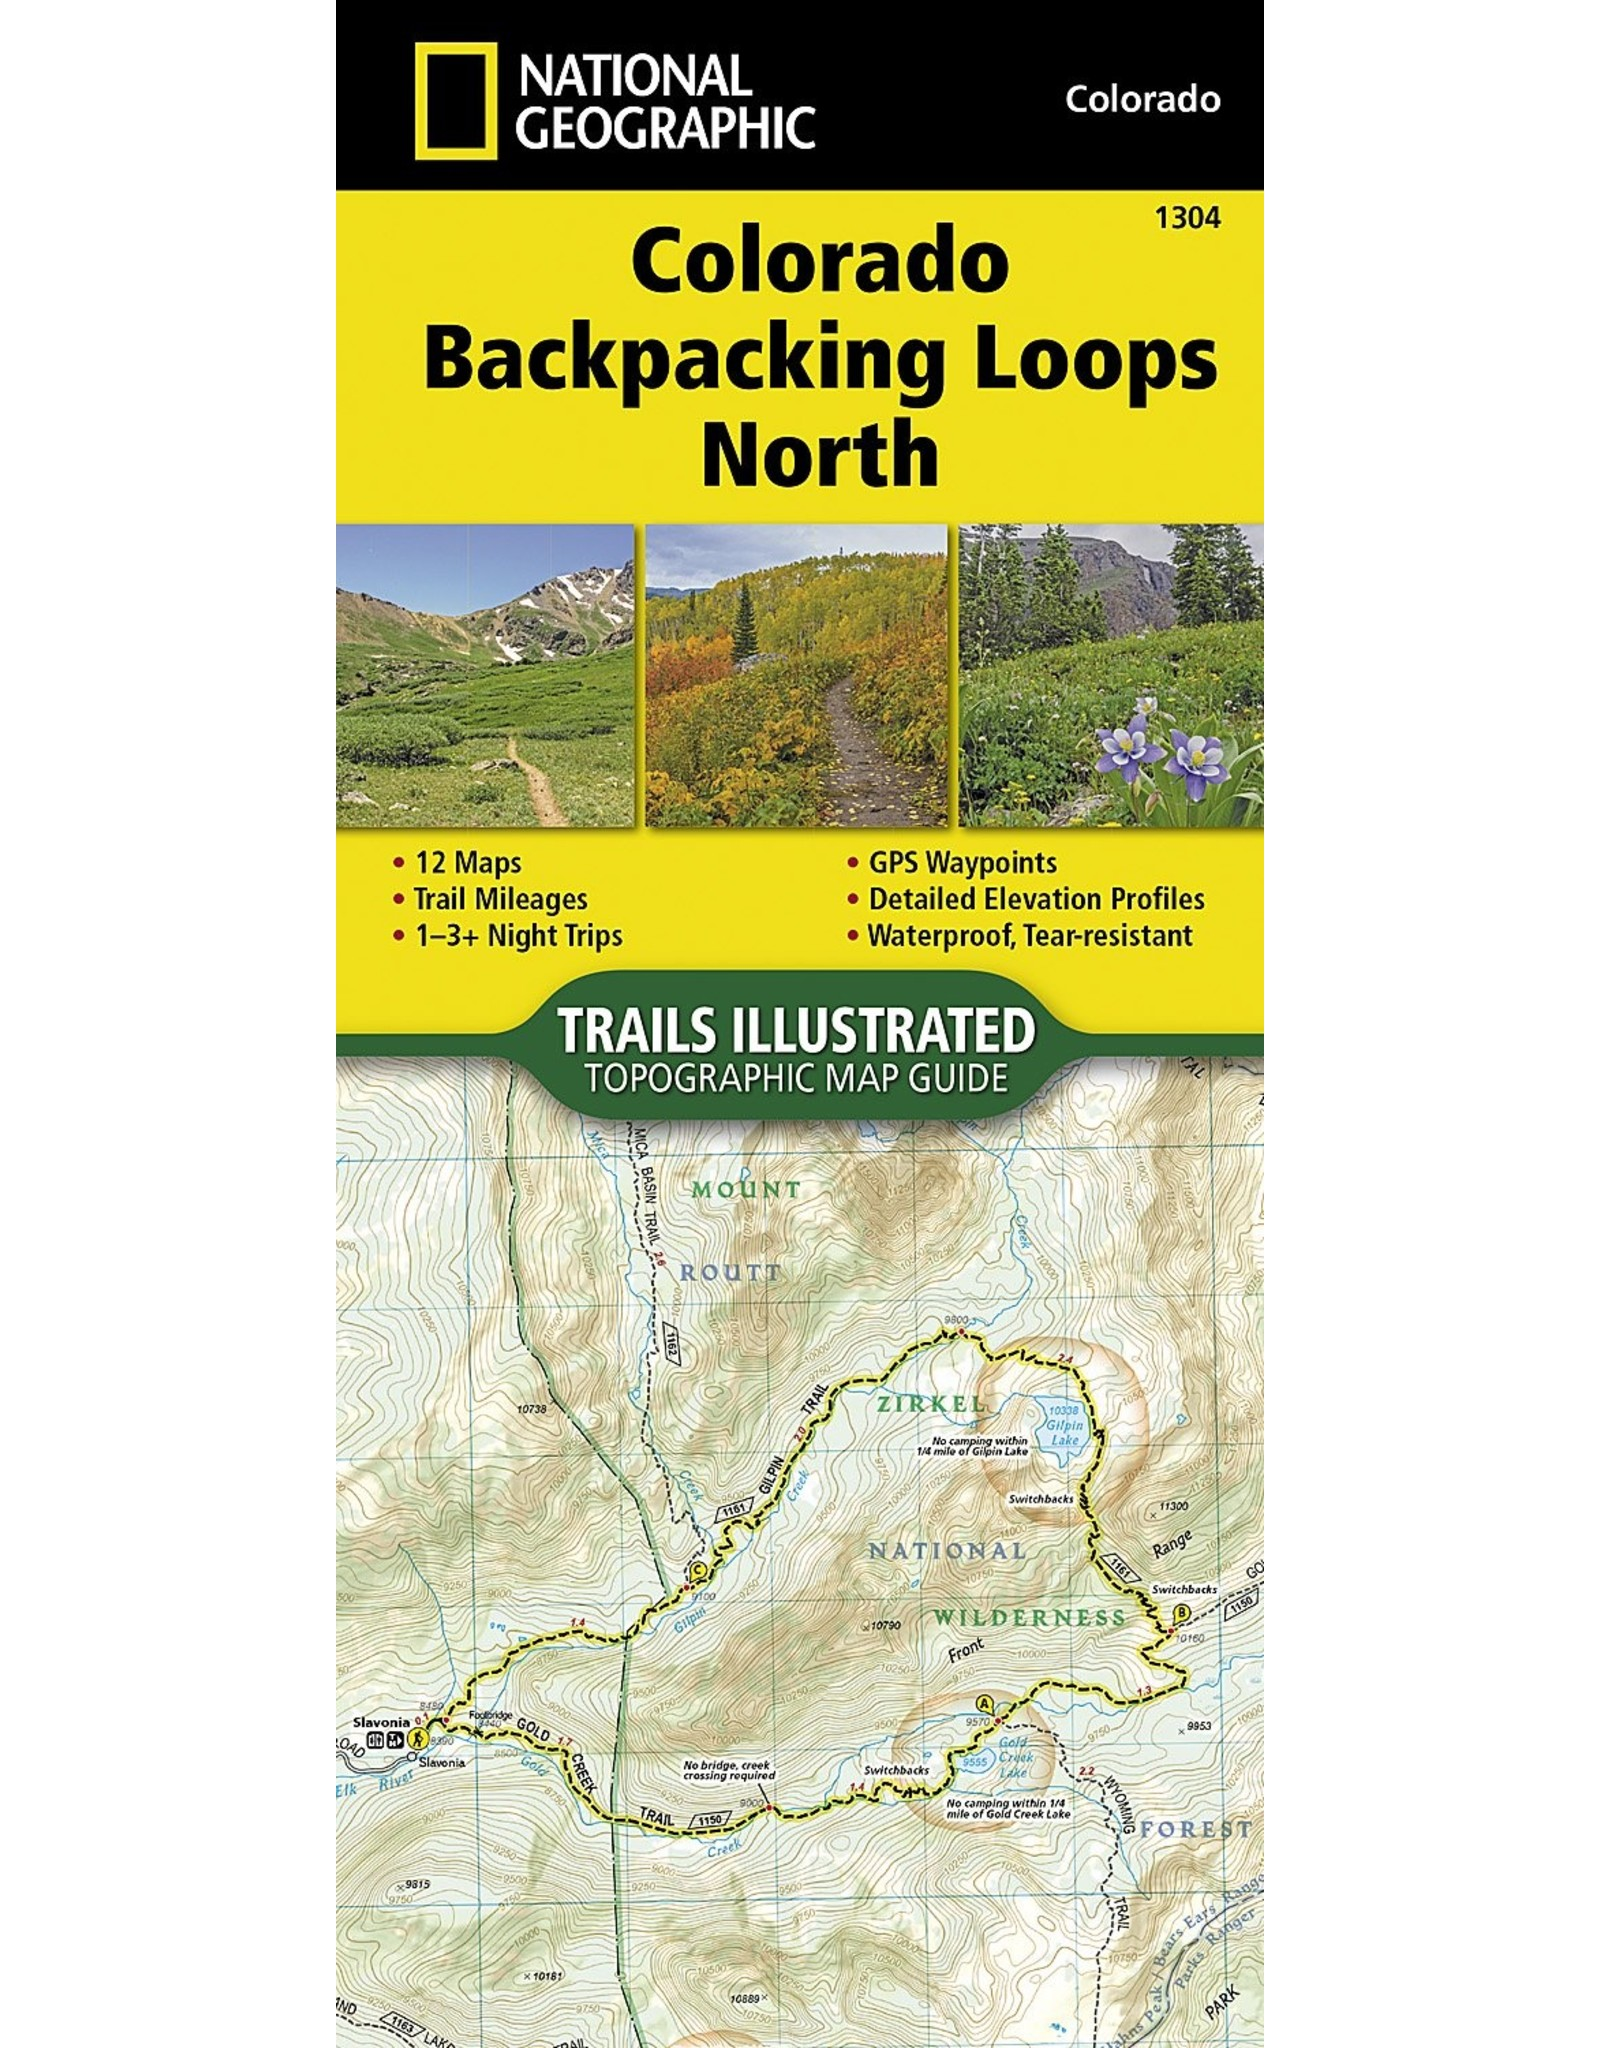 Colorado Backpack Loops North (National Geographic Topographic Map Guide (1304)) Map